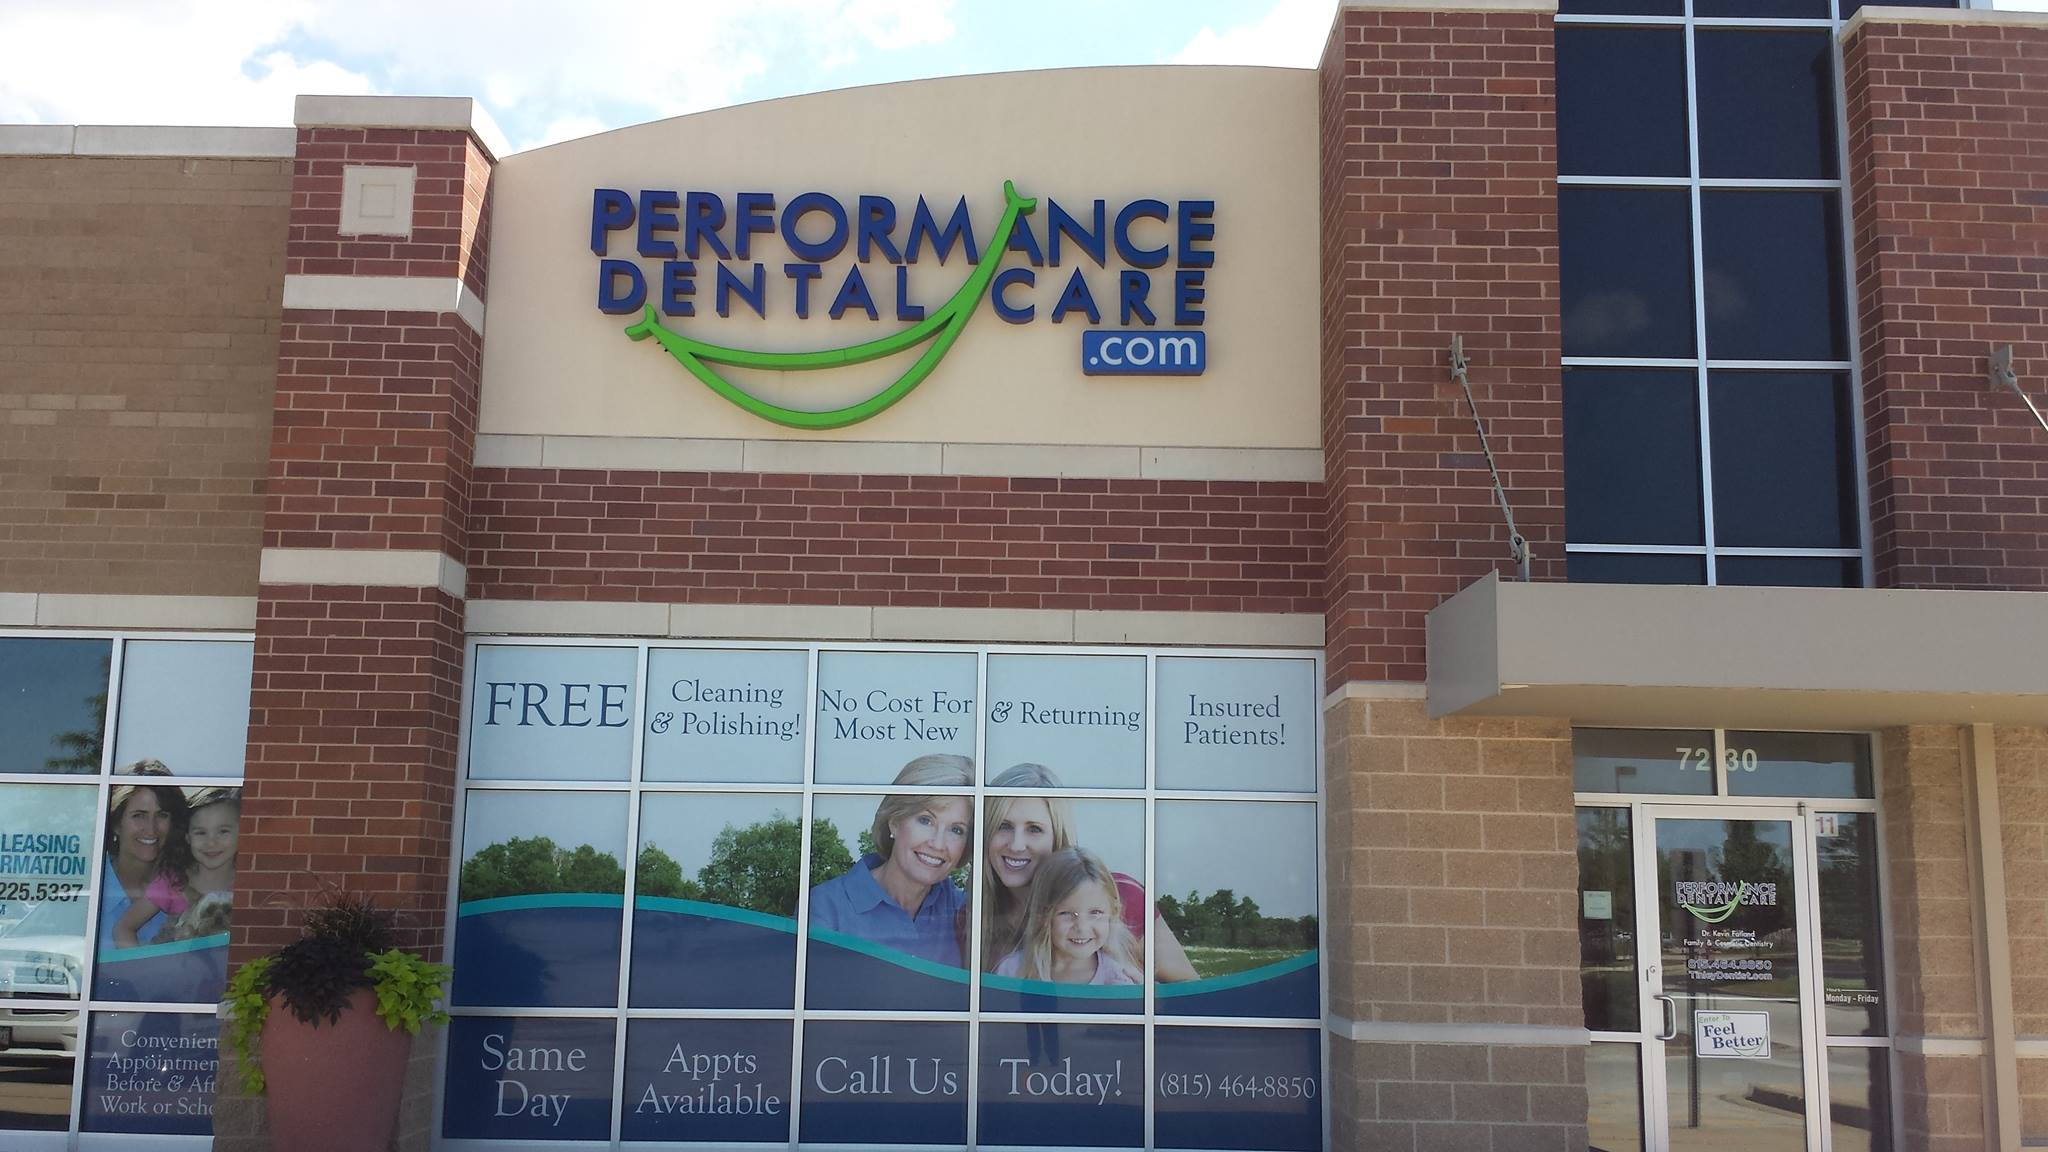 Performance Dental Care